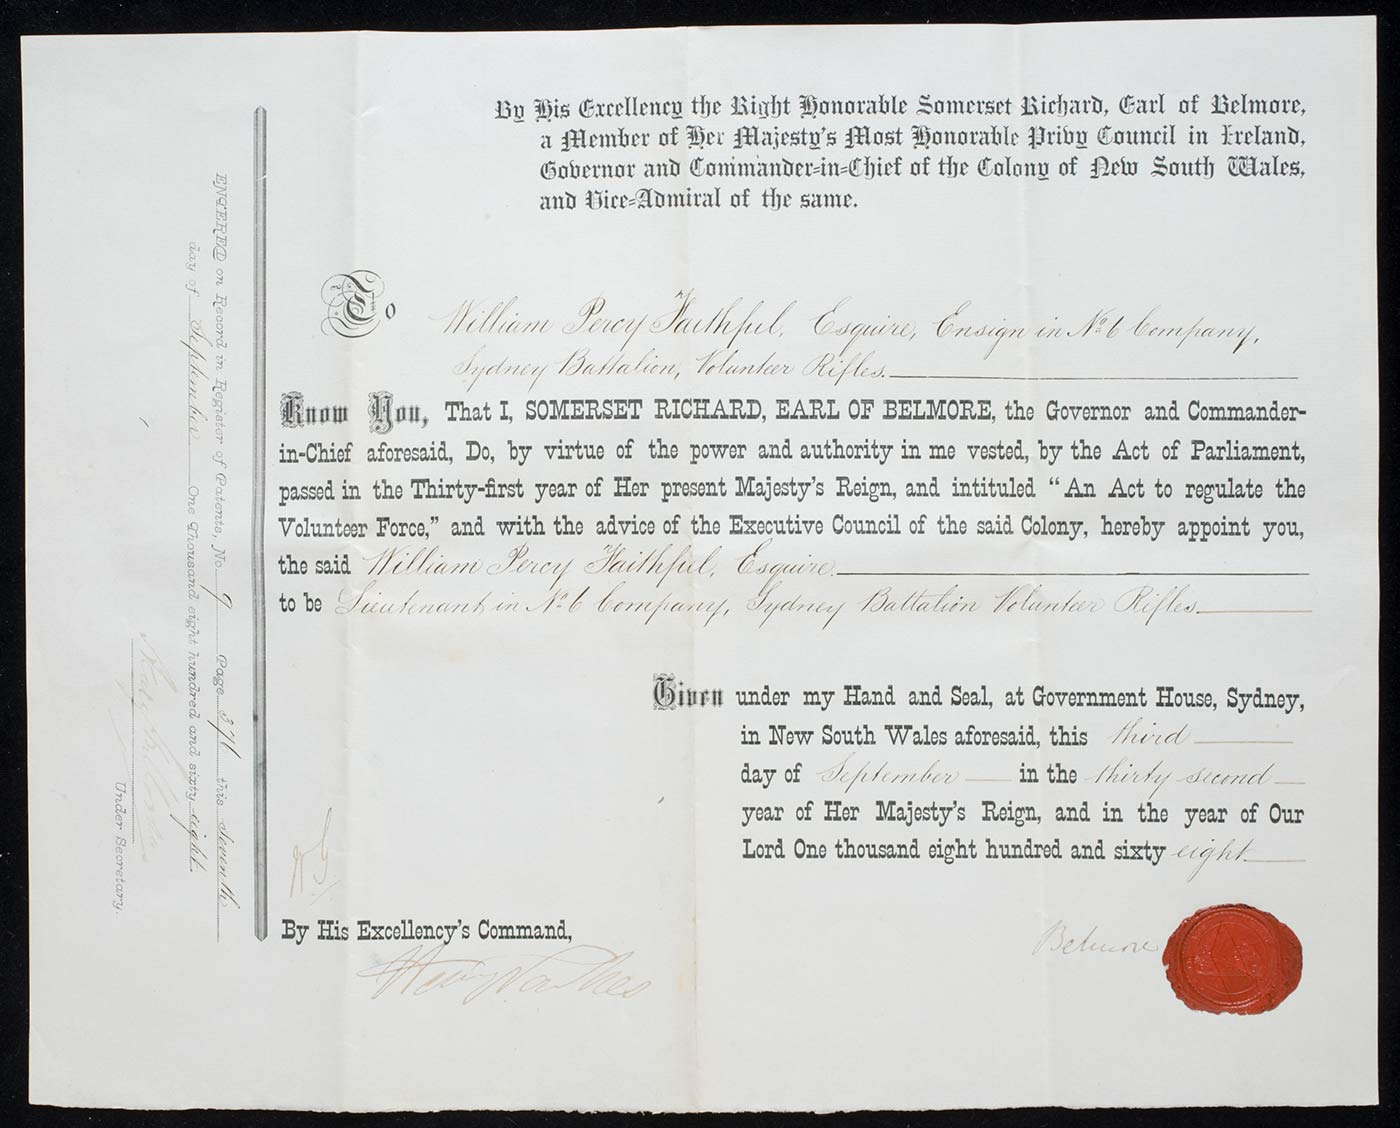 William Percy Faithfull's Certificate of Commission as Lieutenant in No. 6 Company Battalion of the Volunteer Rifles.